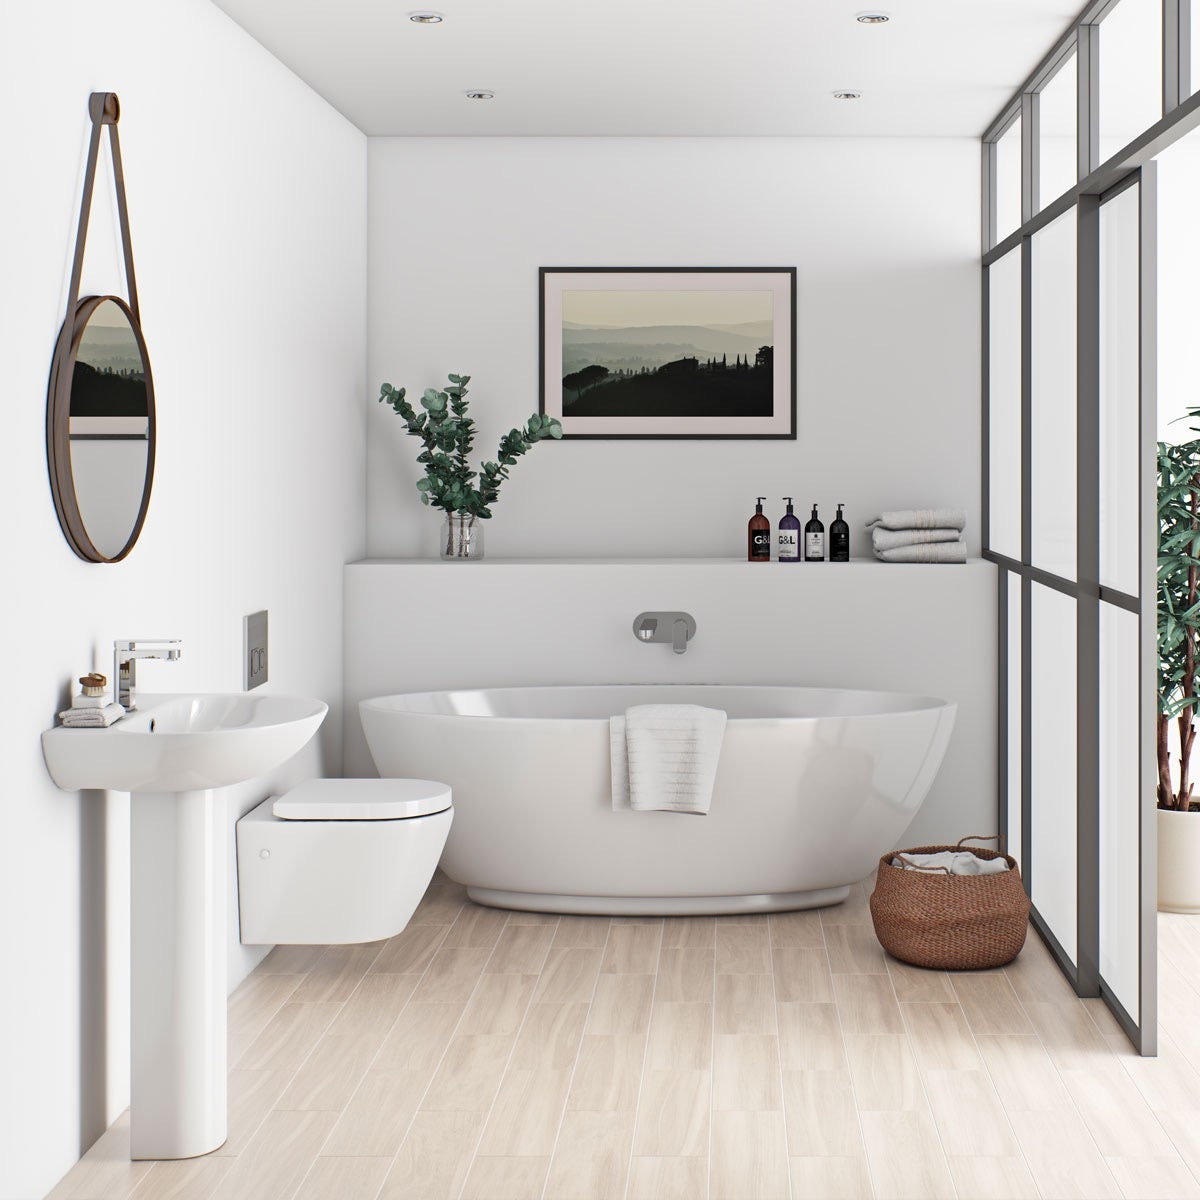 Contemporary bathroom suites